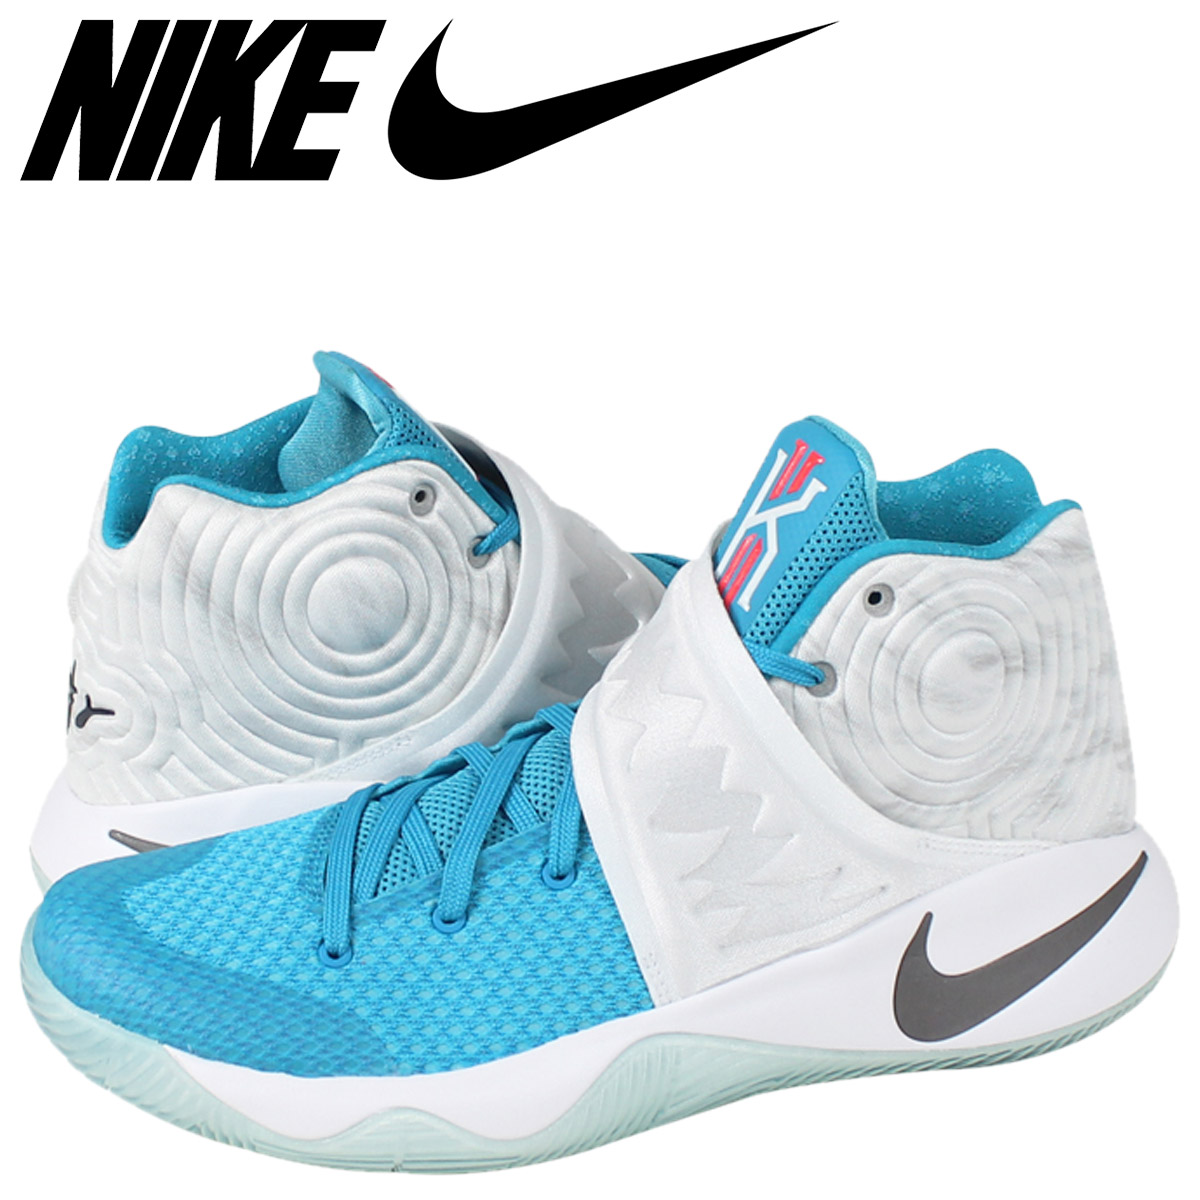 5f60b823a50a  SOLD OUT  Nike NIKE Kylie sneakers KYRIE 2 XMAS Kylie 2 Christmas 823108 -  144 white mens